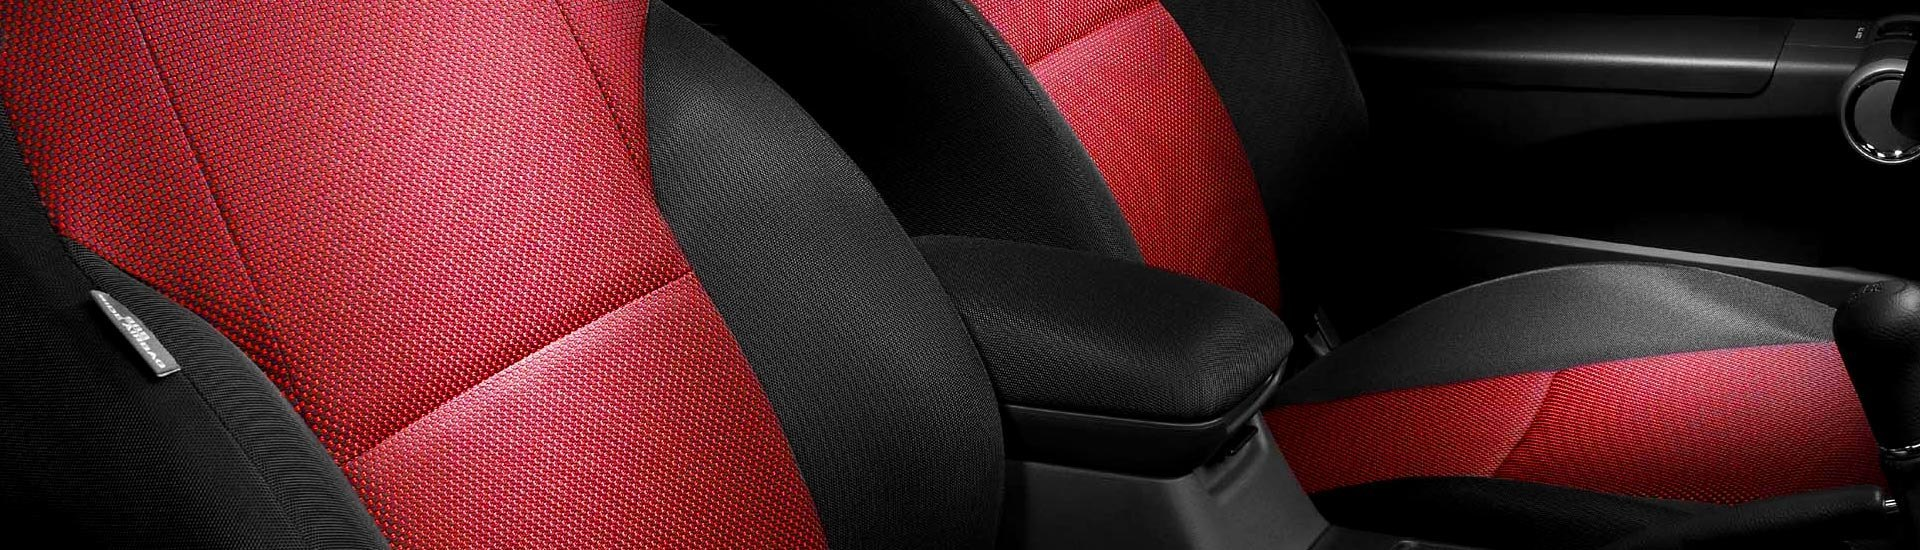 Knitted Pad Auto-schmuck Ibiza Seat Seat Covers Custom-Made Car Covers Perfect Fit Seat Protector Velour Ibiza II p3